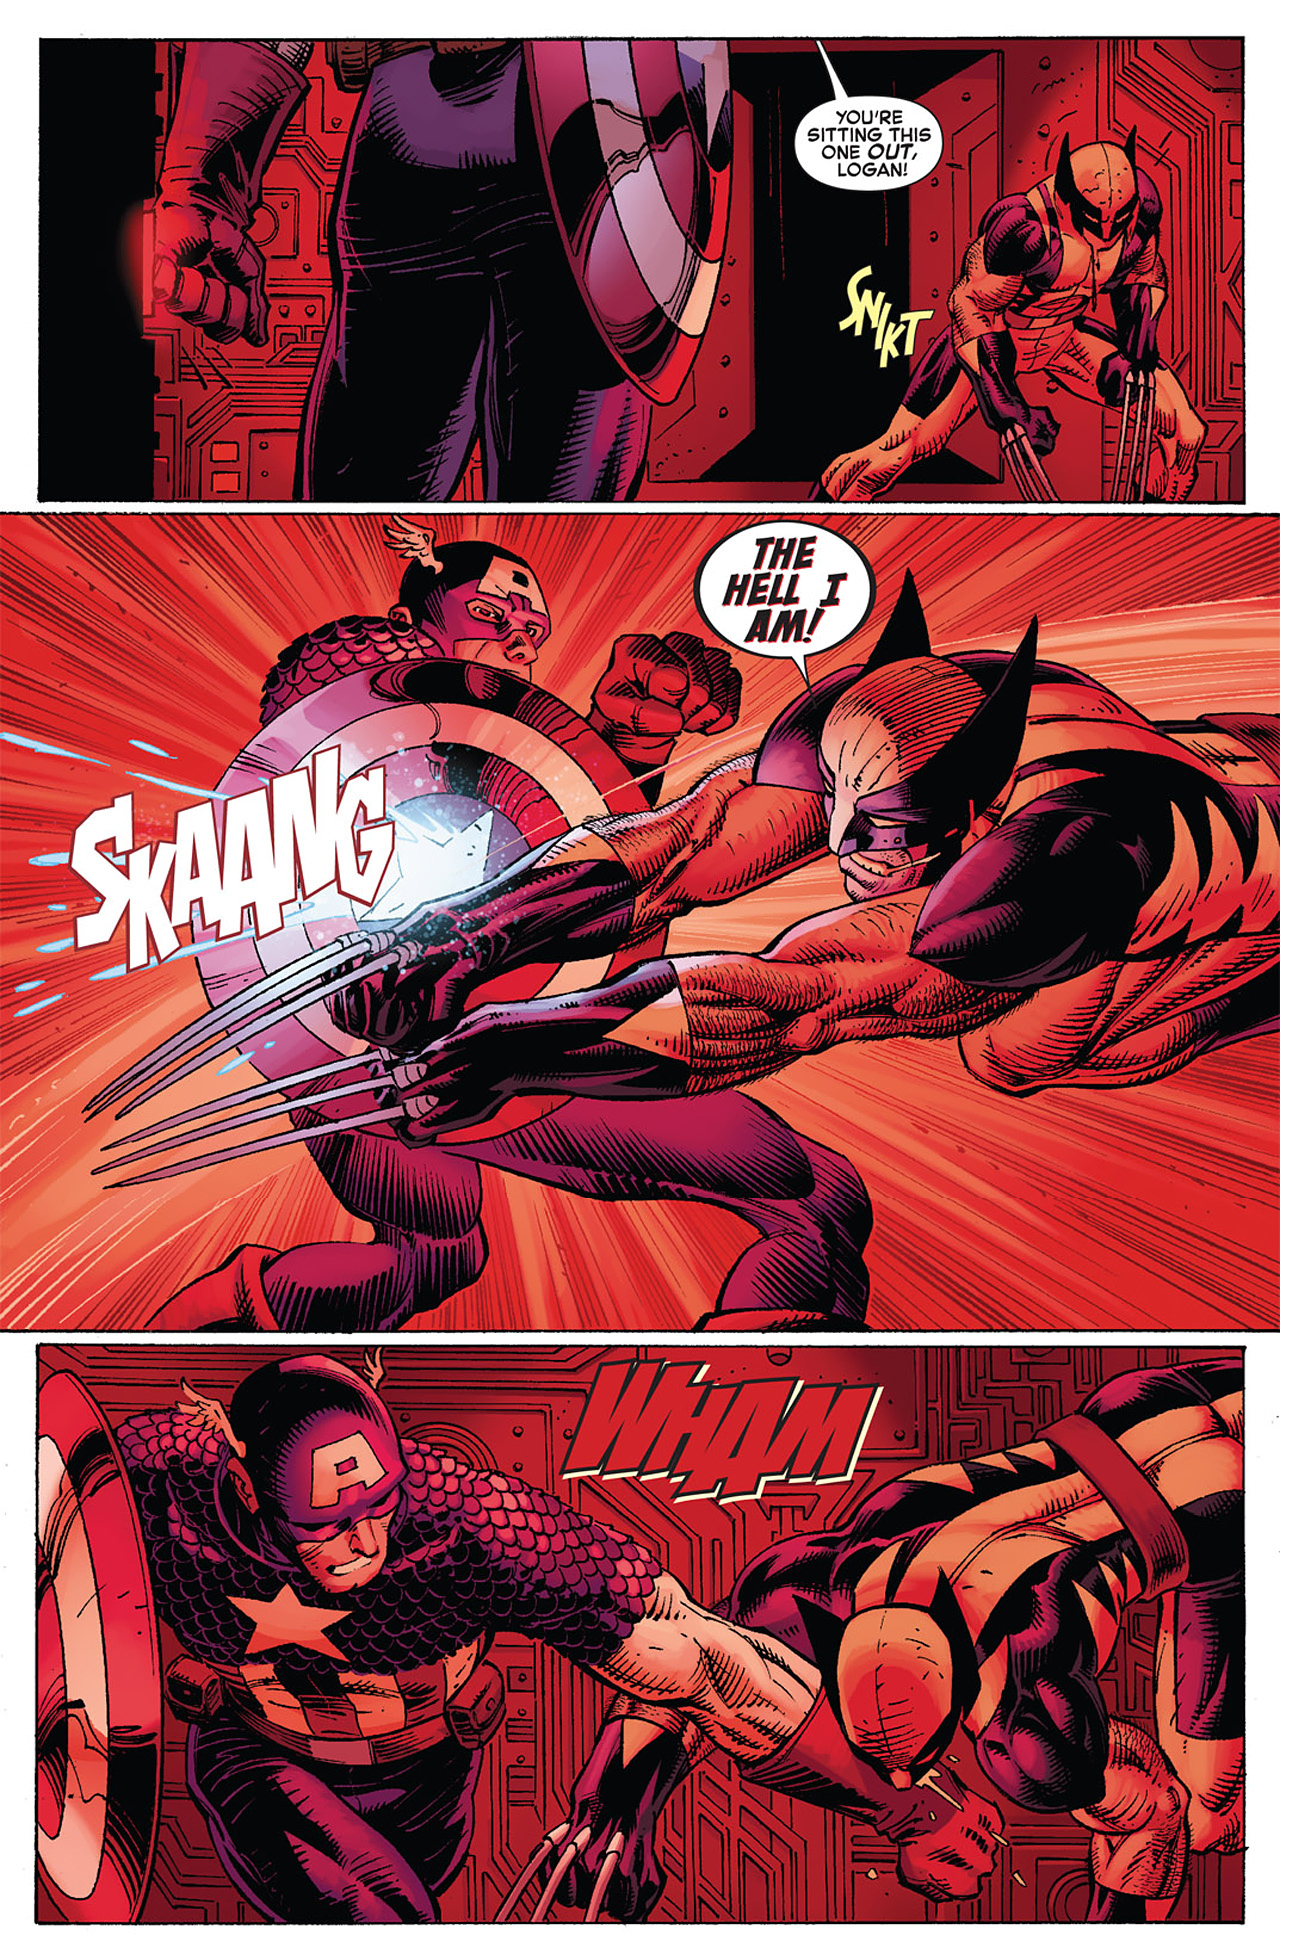 captain america vs wolverine (avx)